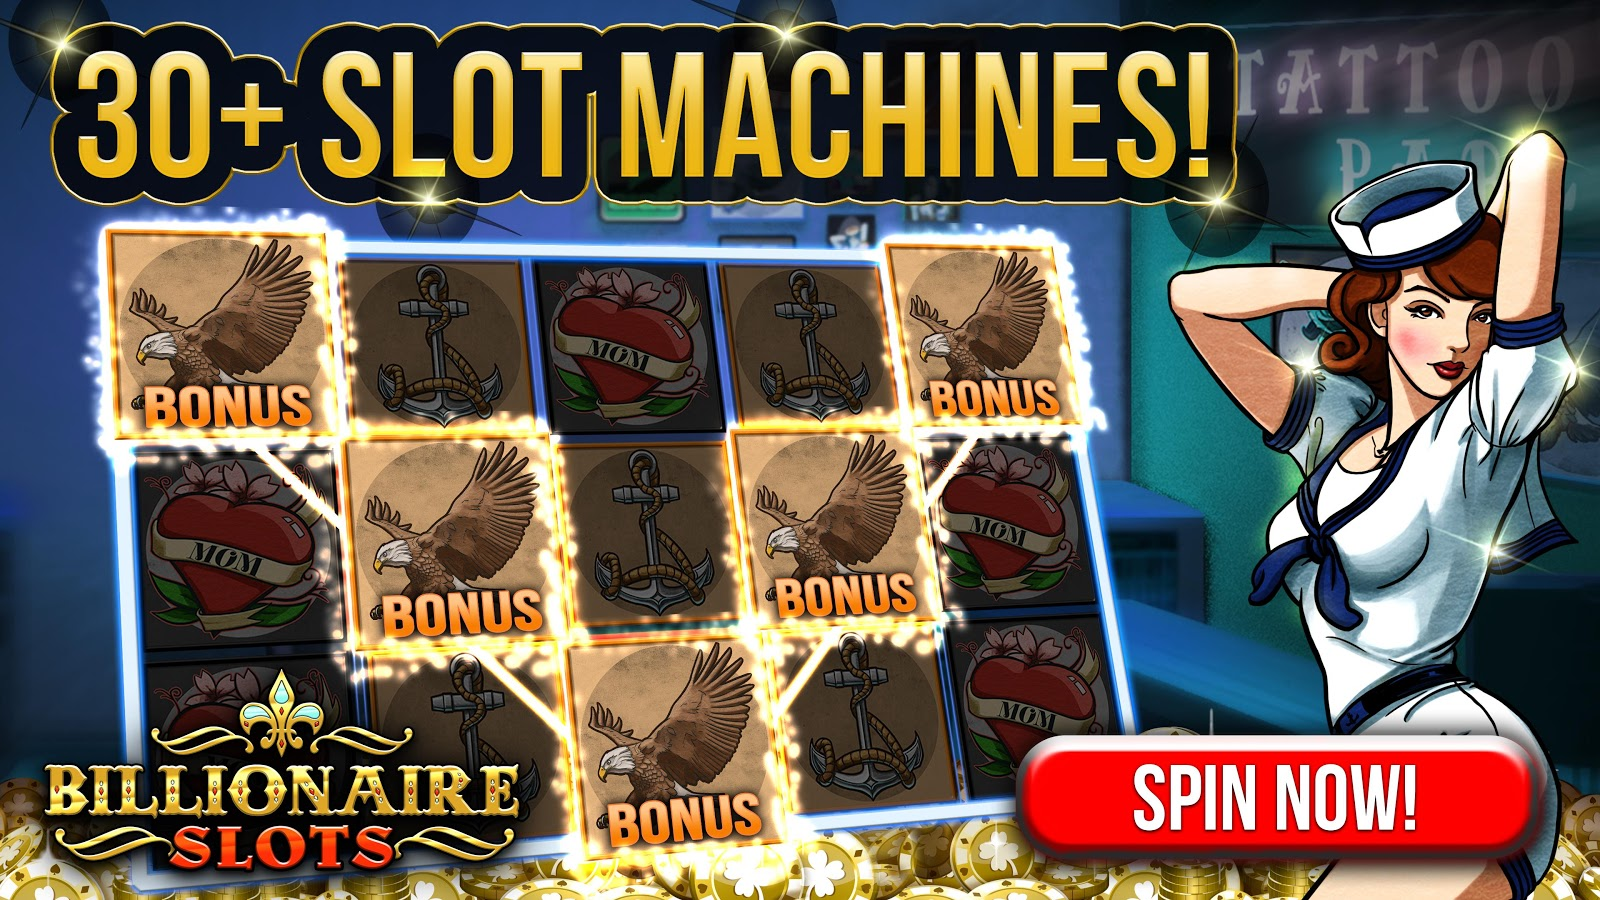 Slots Billionaire - Free Casino Slot Games!- screenshot